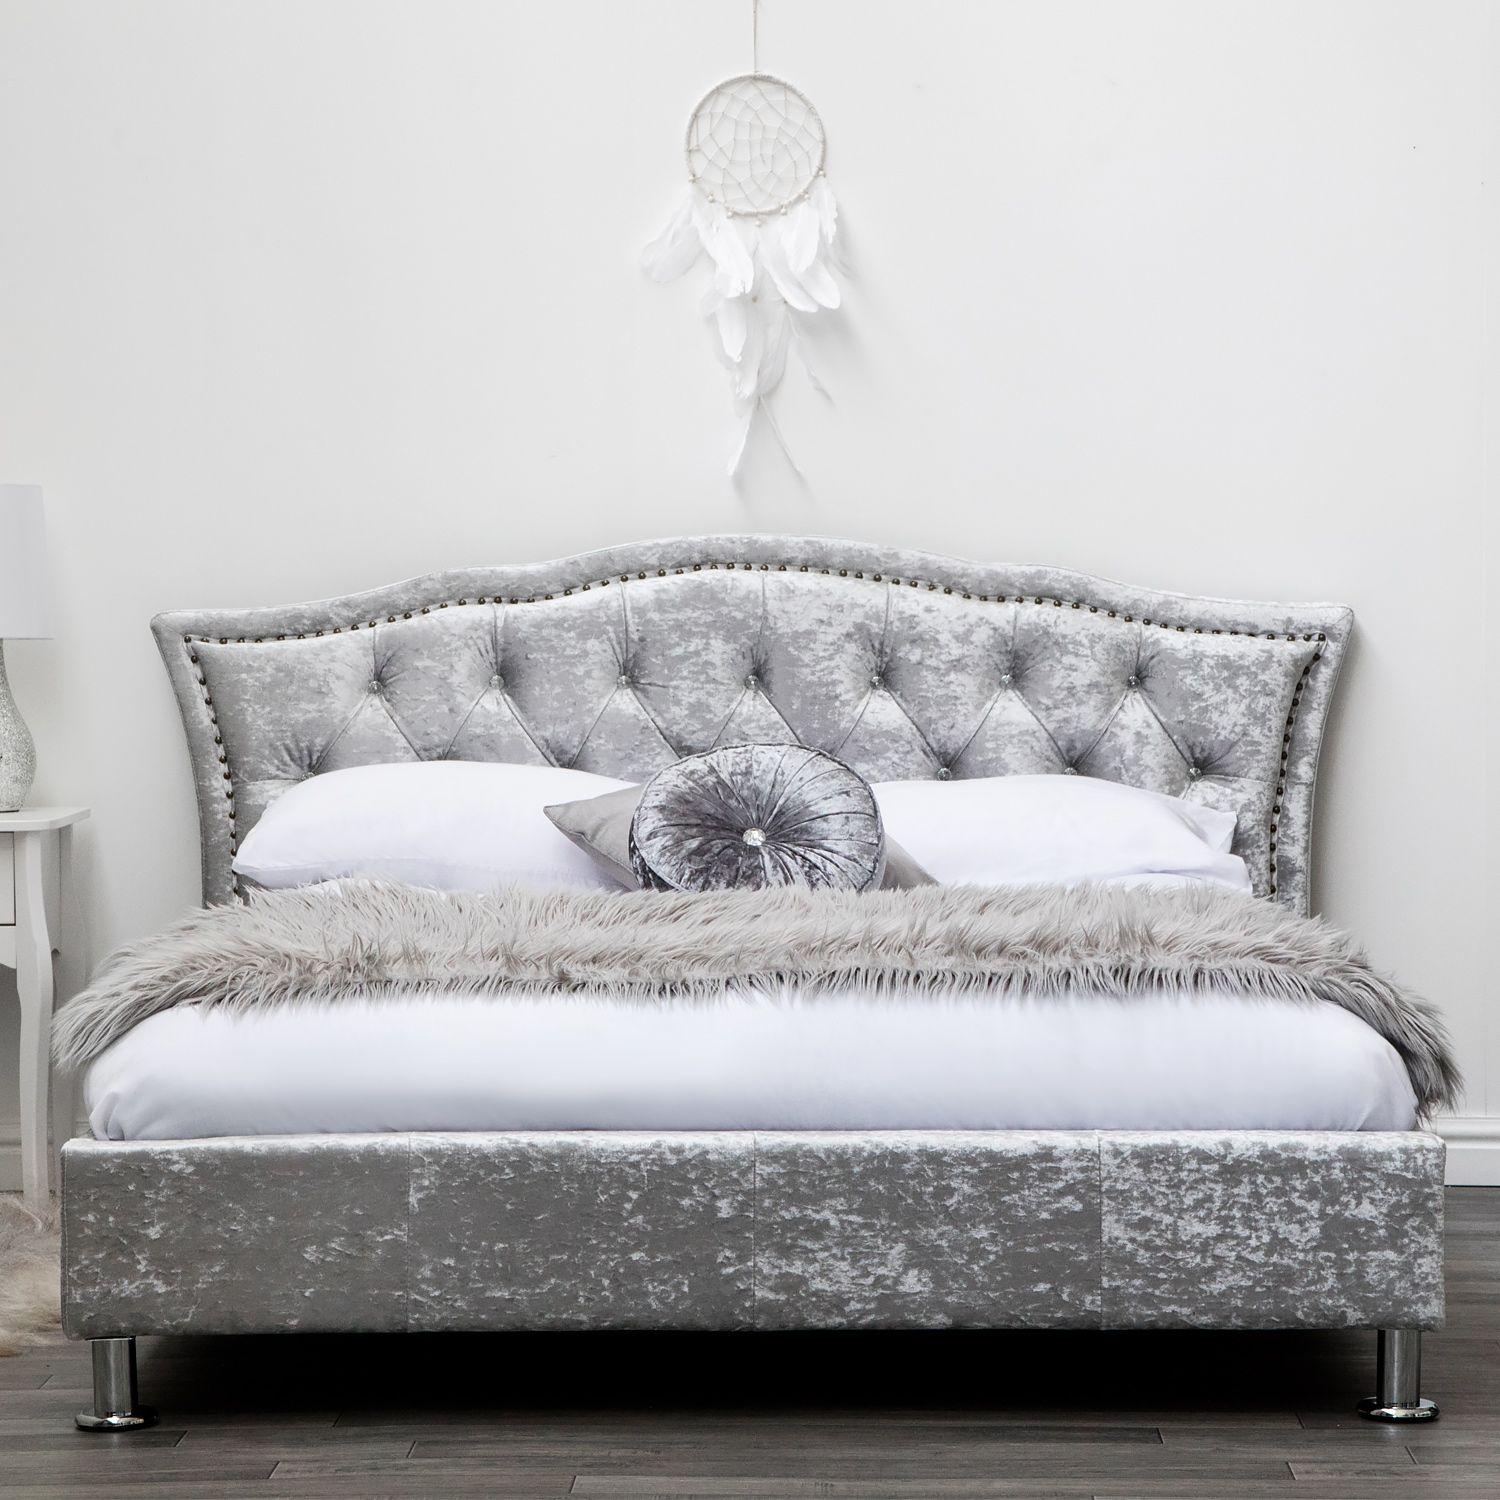 Diamante Silver Crushed Velvet Upholstered Low Designer King Size Bed Frame Upholstered Bed Frame Velvet Upholstered Bed King Size Bed Frame